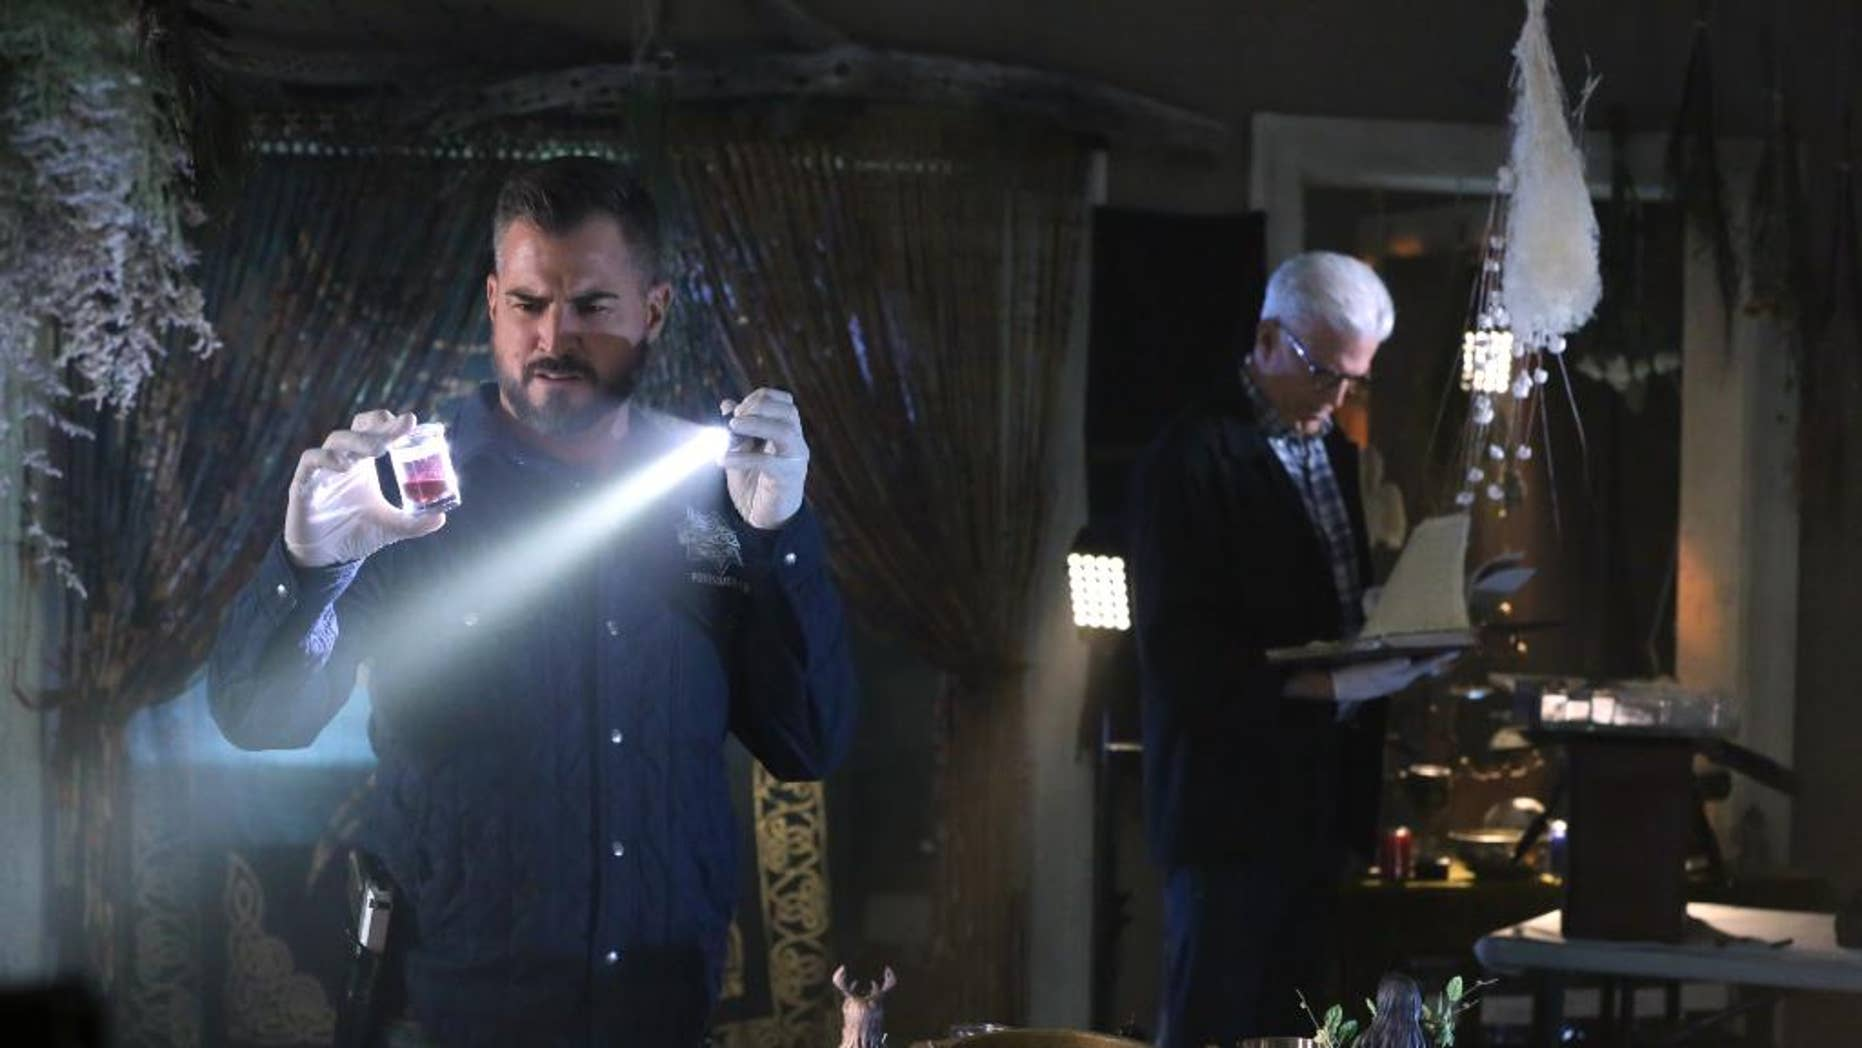 """In this image released by CBS, George Eads, left, and Ted Danson appear in a scene from """"CSI: Crime Scene Investigation."""" """"CSI,"""" which debuted in 2000, will wrap with a two-hour finale on Sept. 27. Original cast members including William Petersen and Marg Helgenberger are returning for the send-off. (Michael Yarish/CBS  via AP)"""